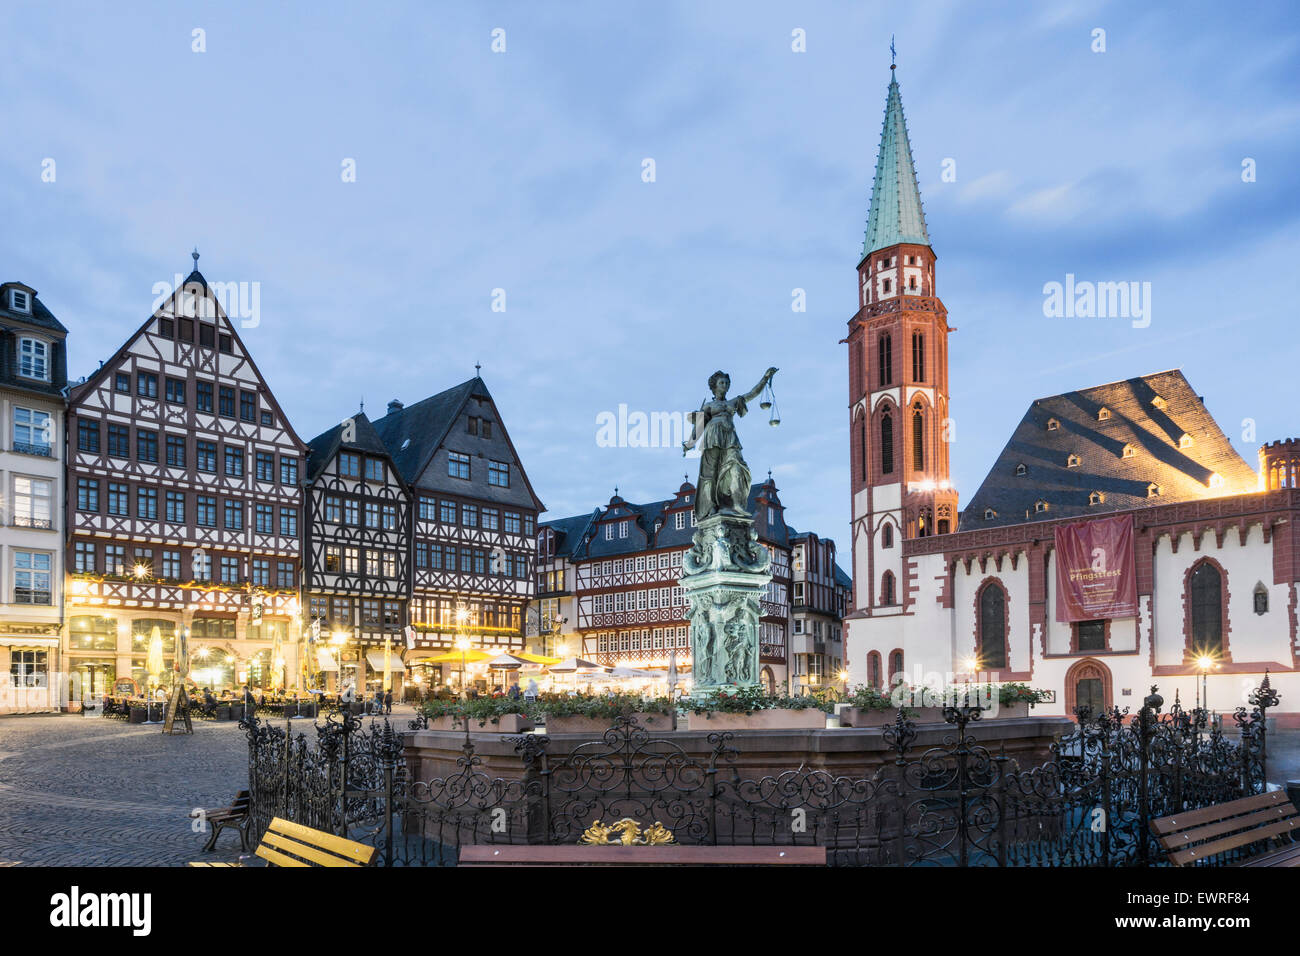 Justitia, Fountain of Justice, Restaurants, Cafes,  Roemerberg Frankfurt Germany - Stock Image